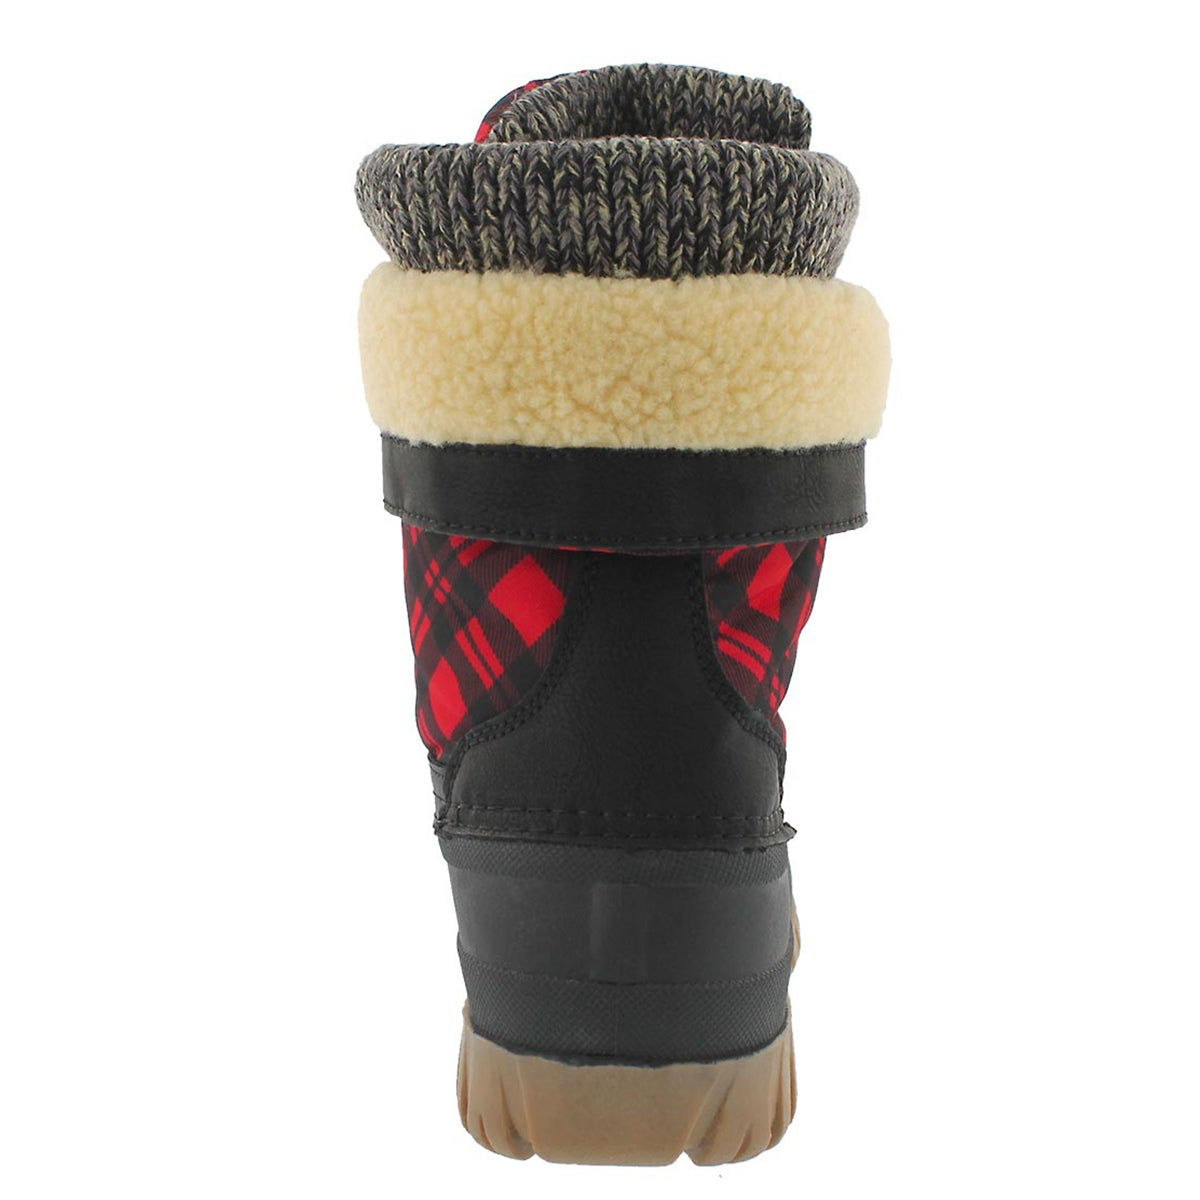 Lds Creek lace up red pld wp winter boot